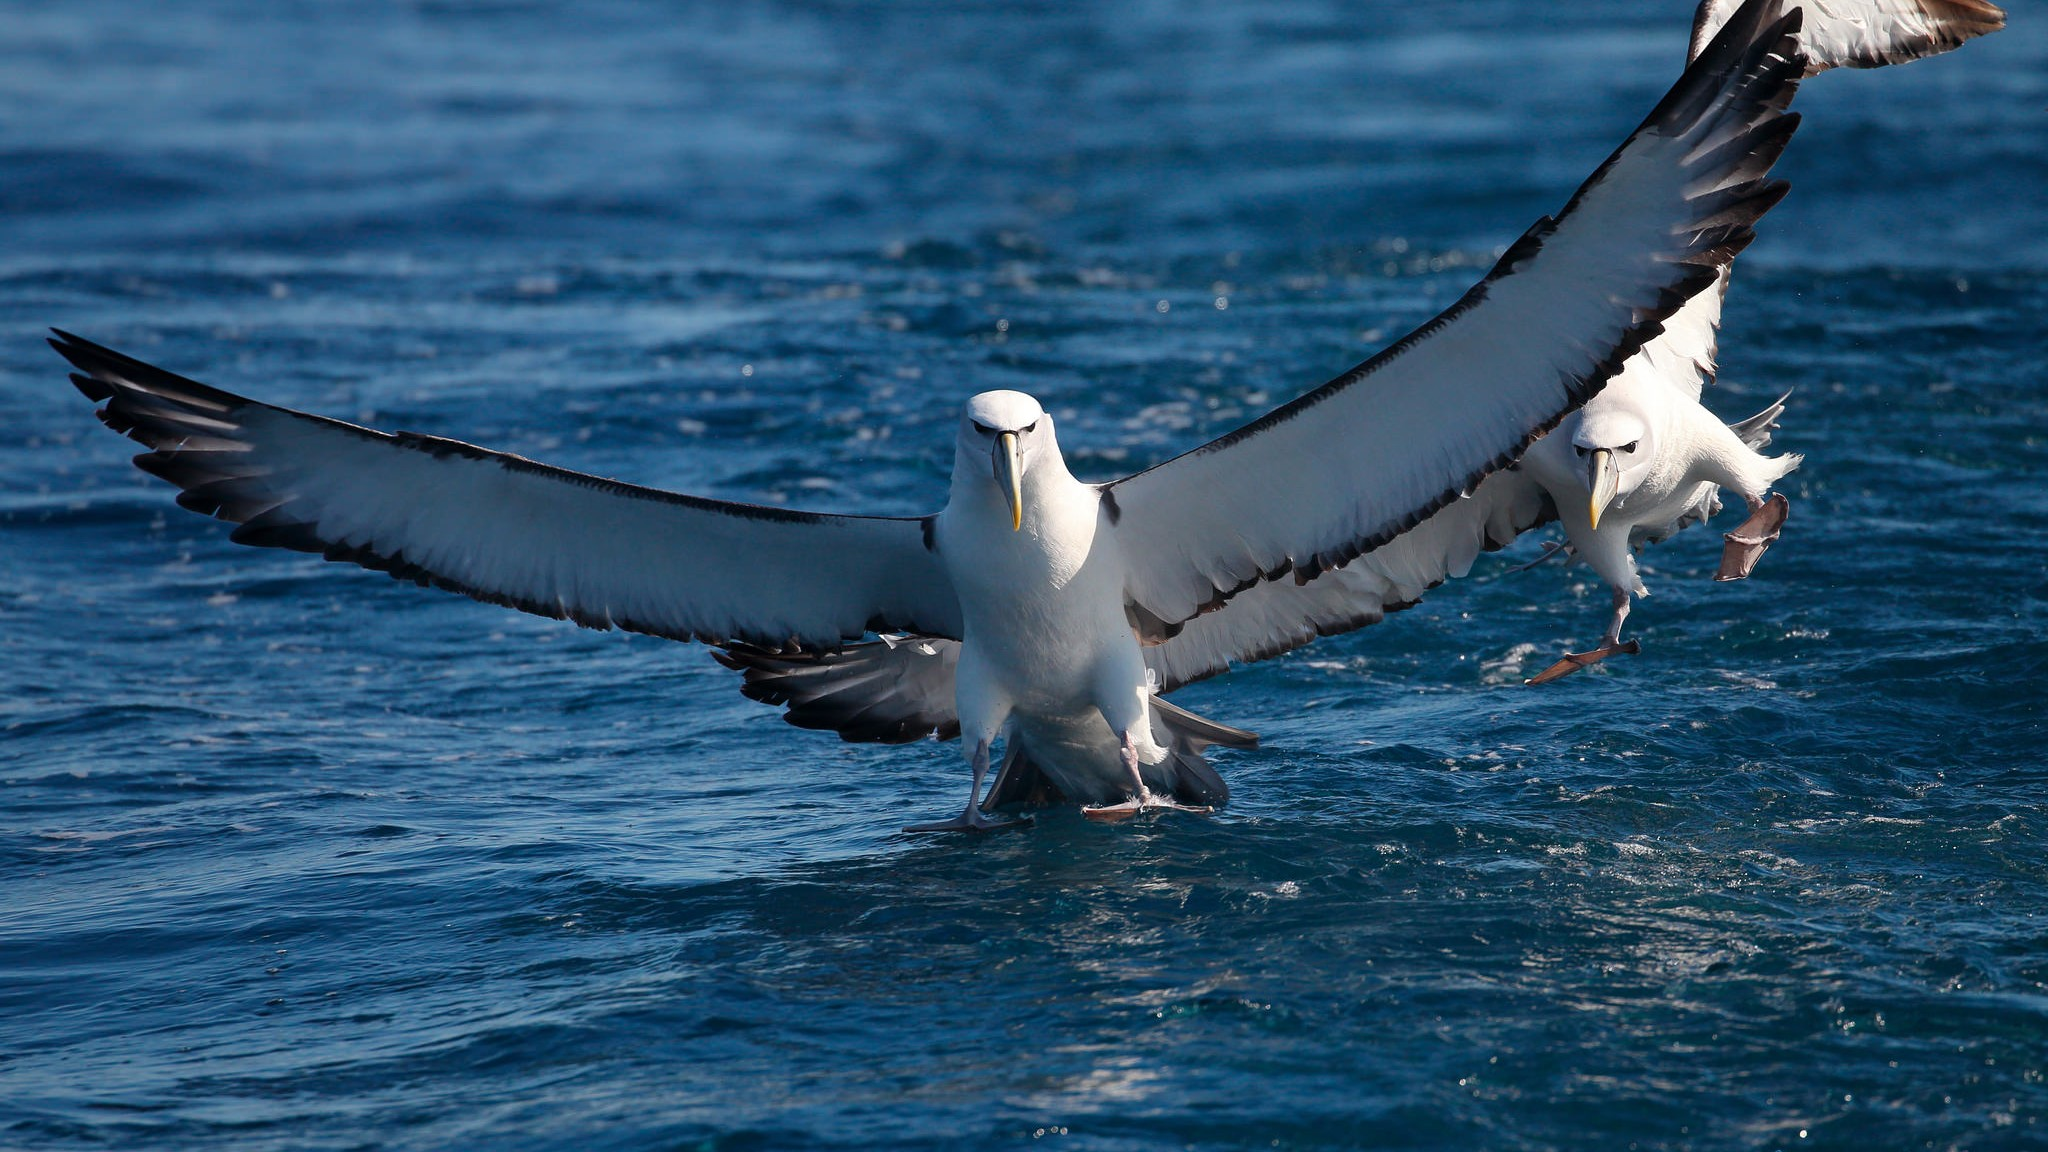 A Gigapixel Camera Turned This Island into an Albatross 'Truman Show'